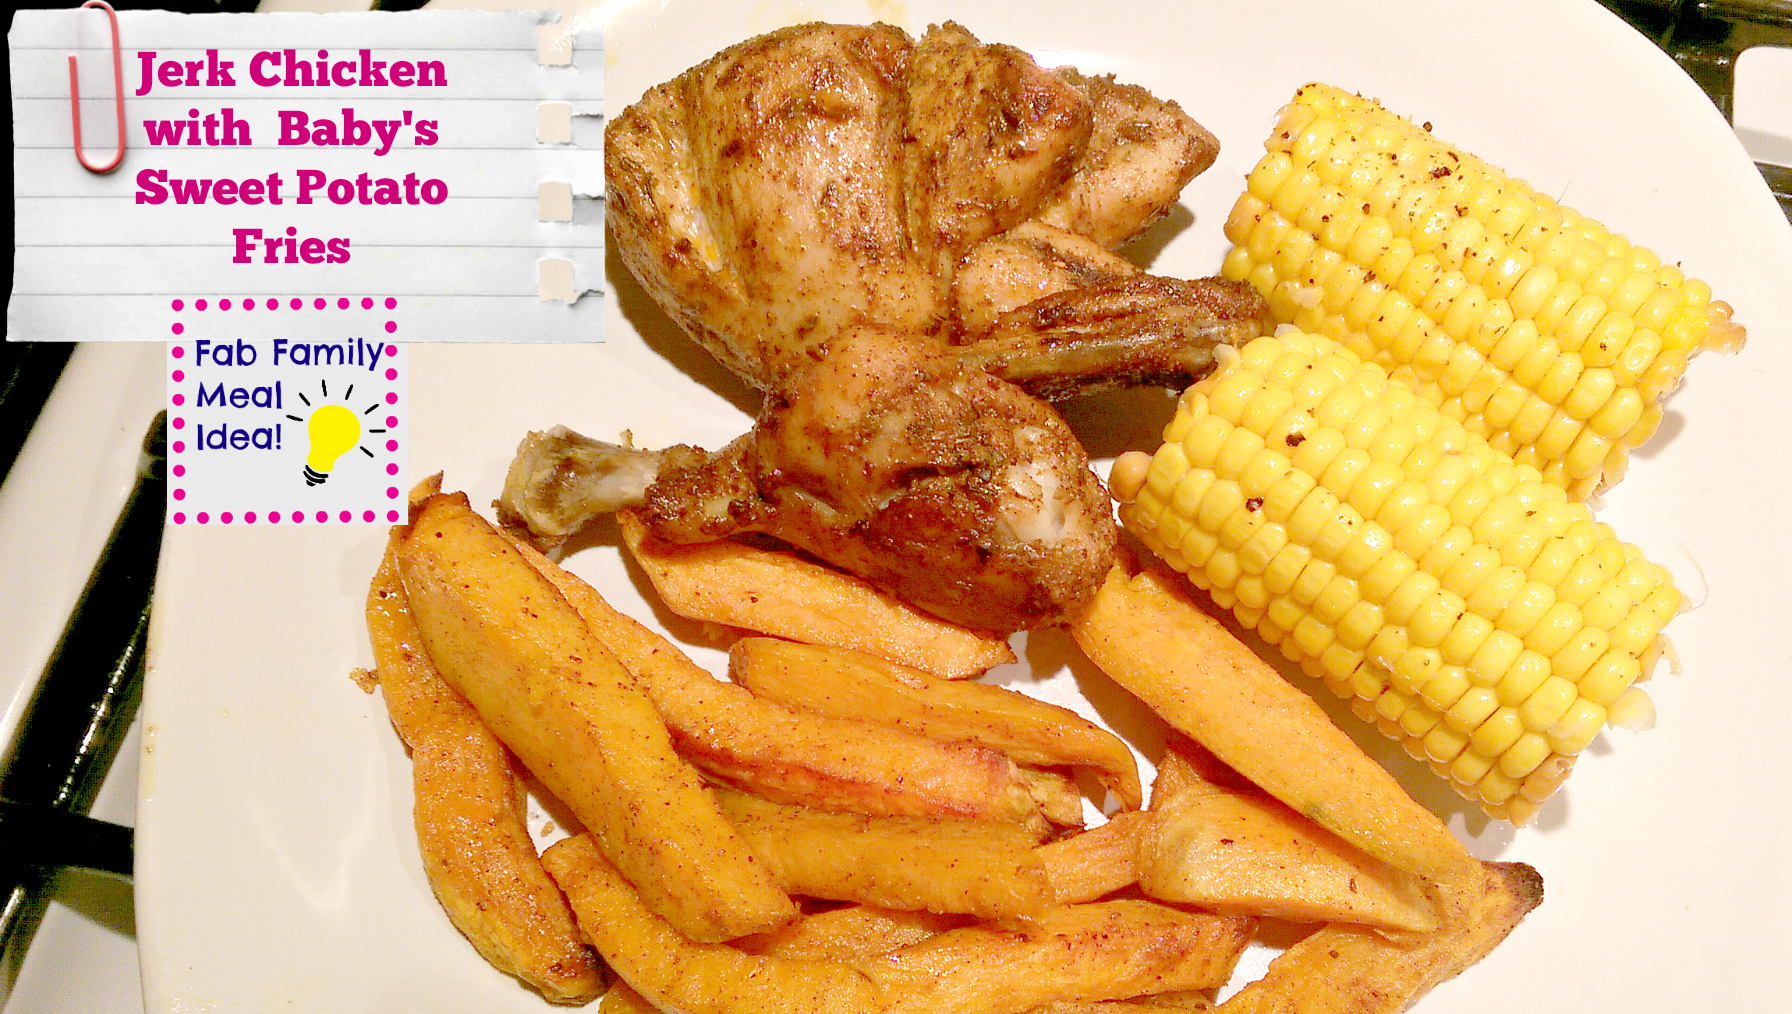 Jerk Chicken with Spicy Sweet Potato Fries